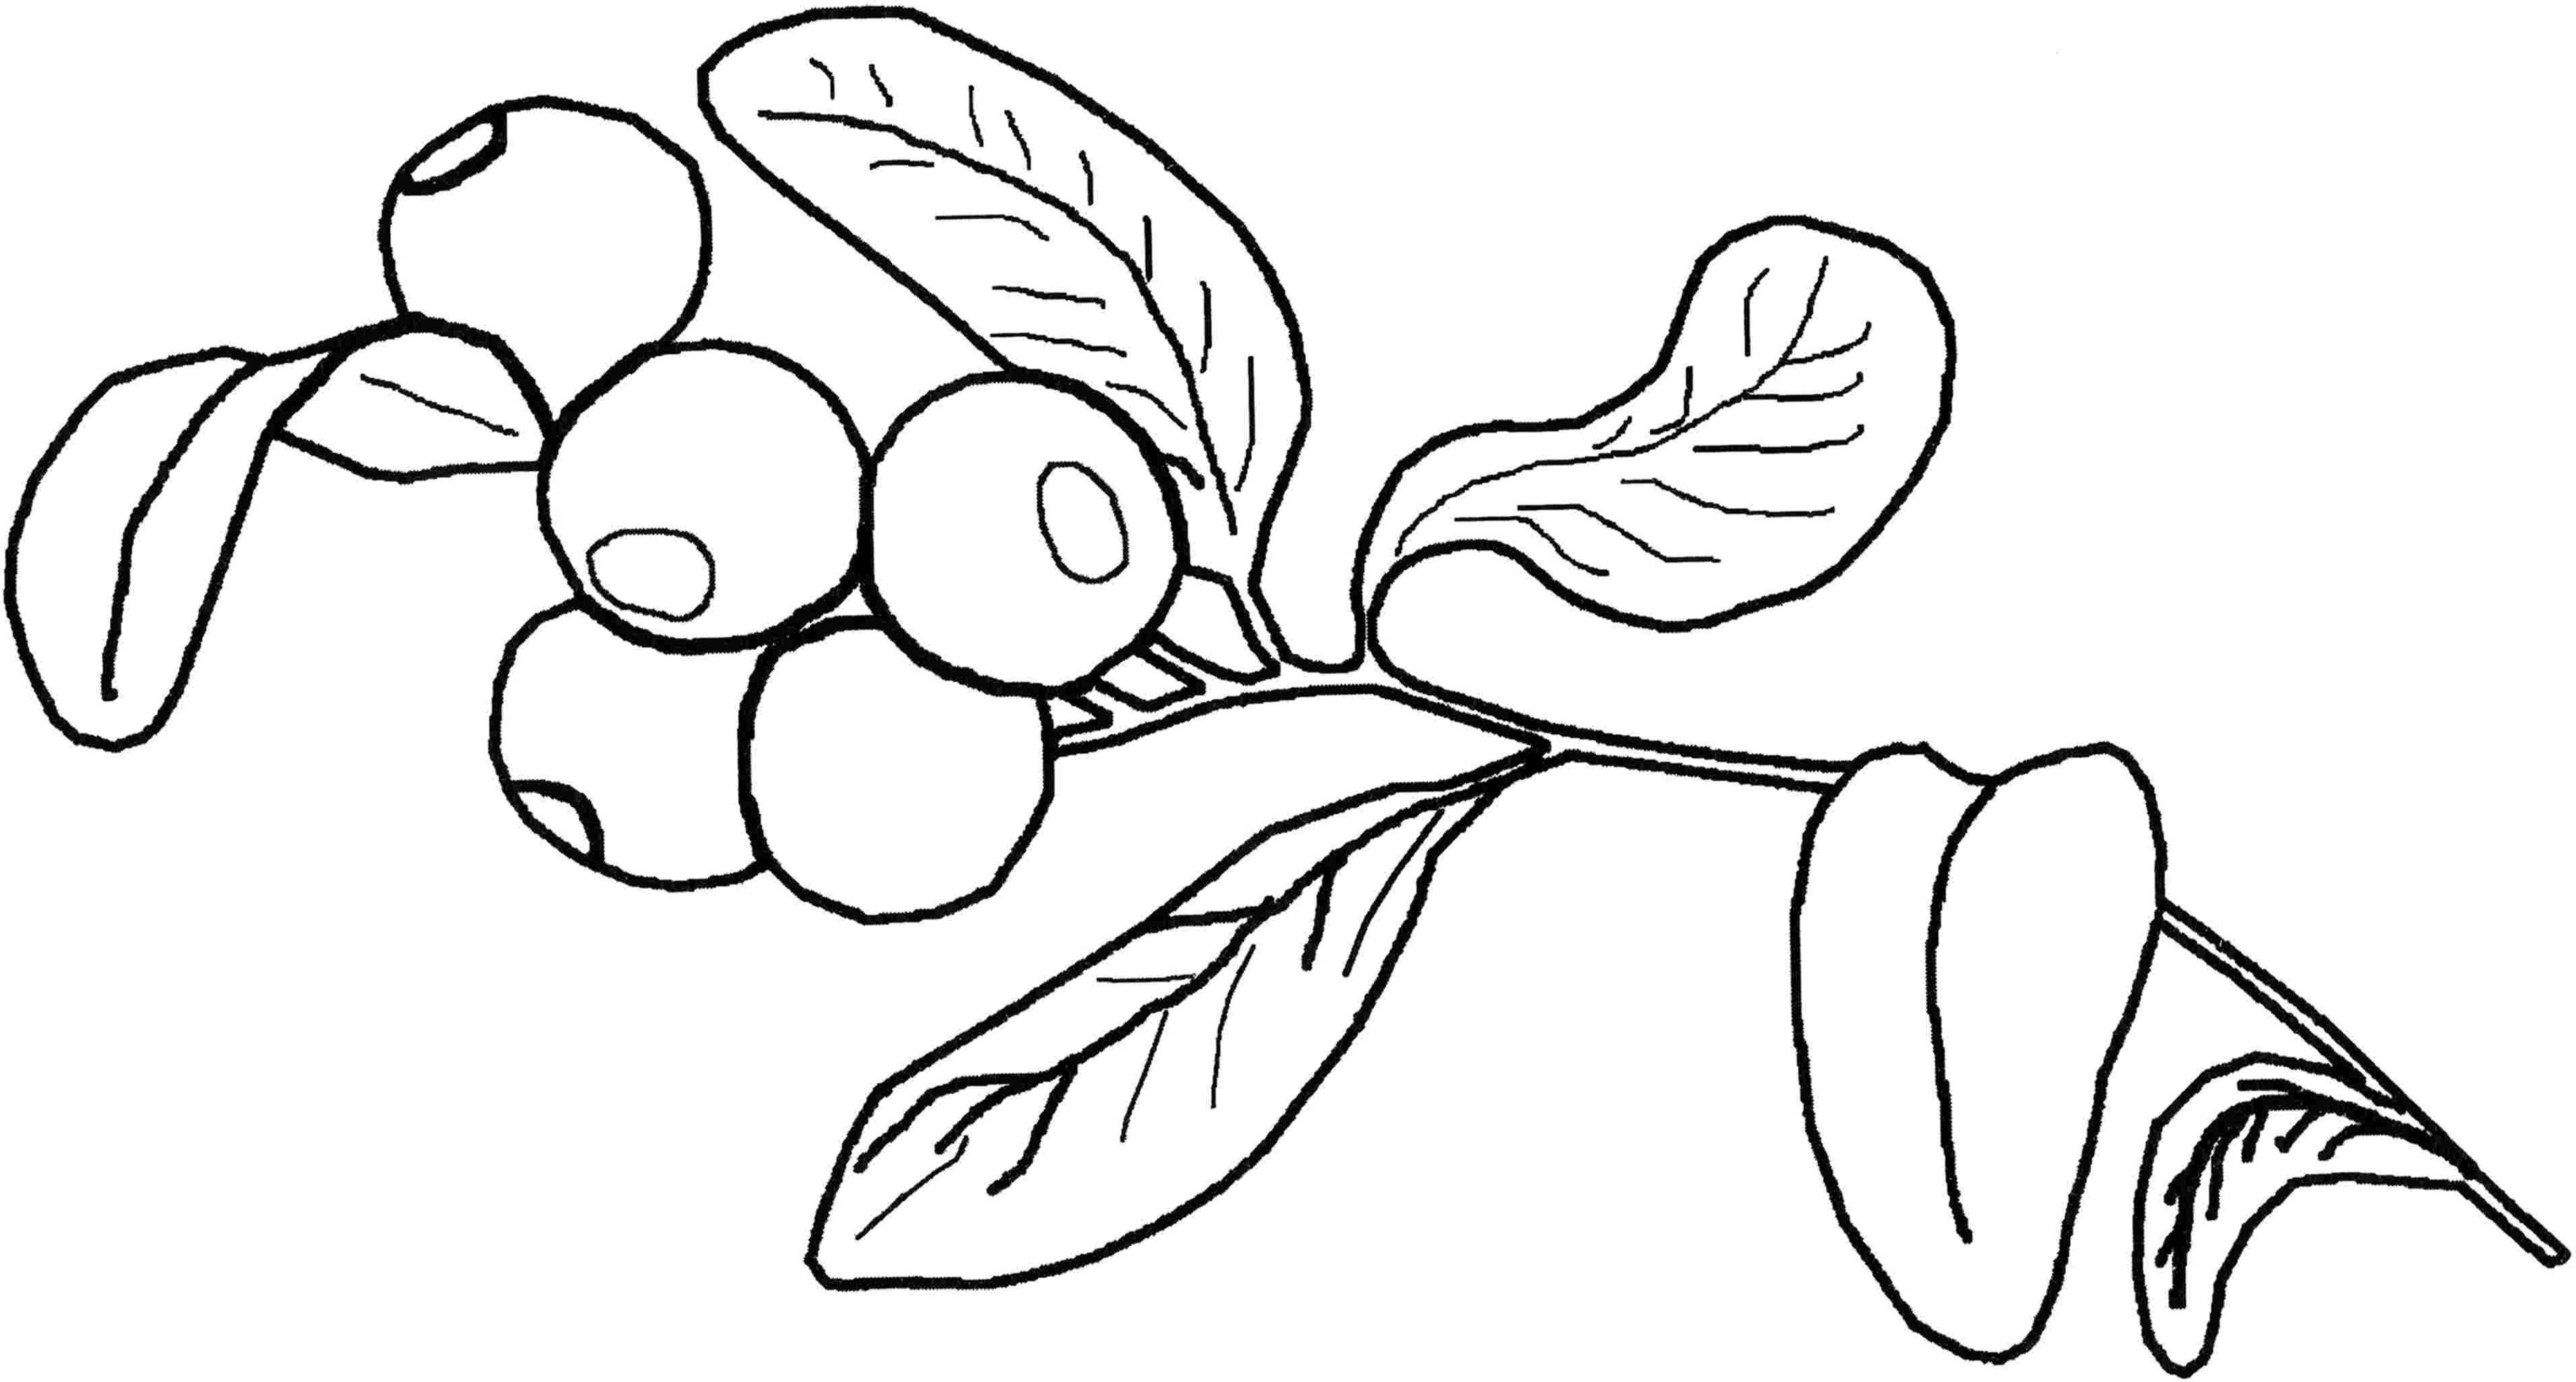 blueberry coloring page blueberries coloring pages coloring pages to download coloring page blueberry 1 1